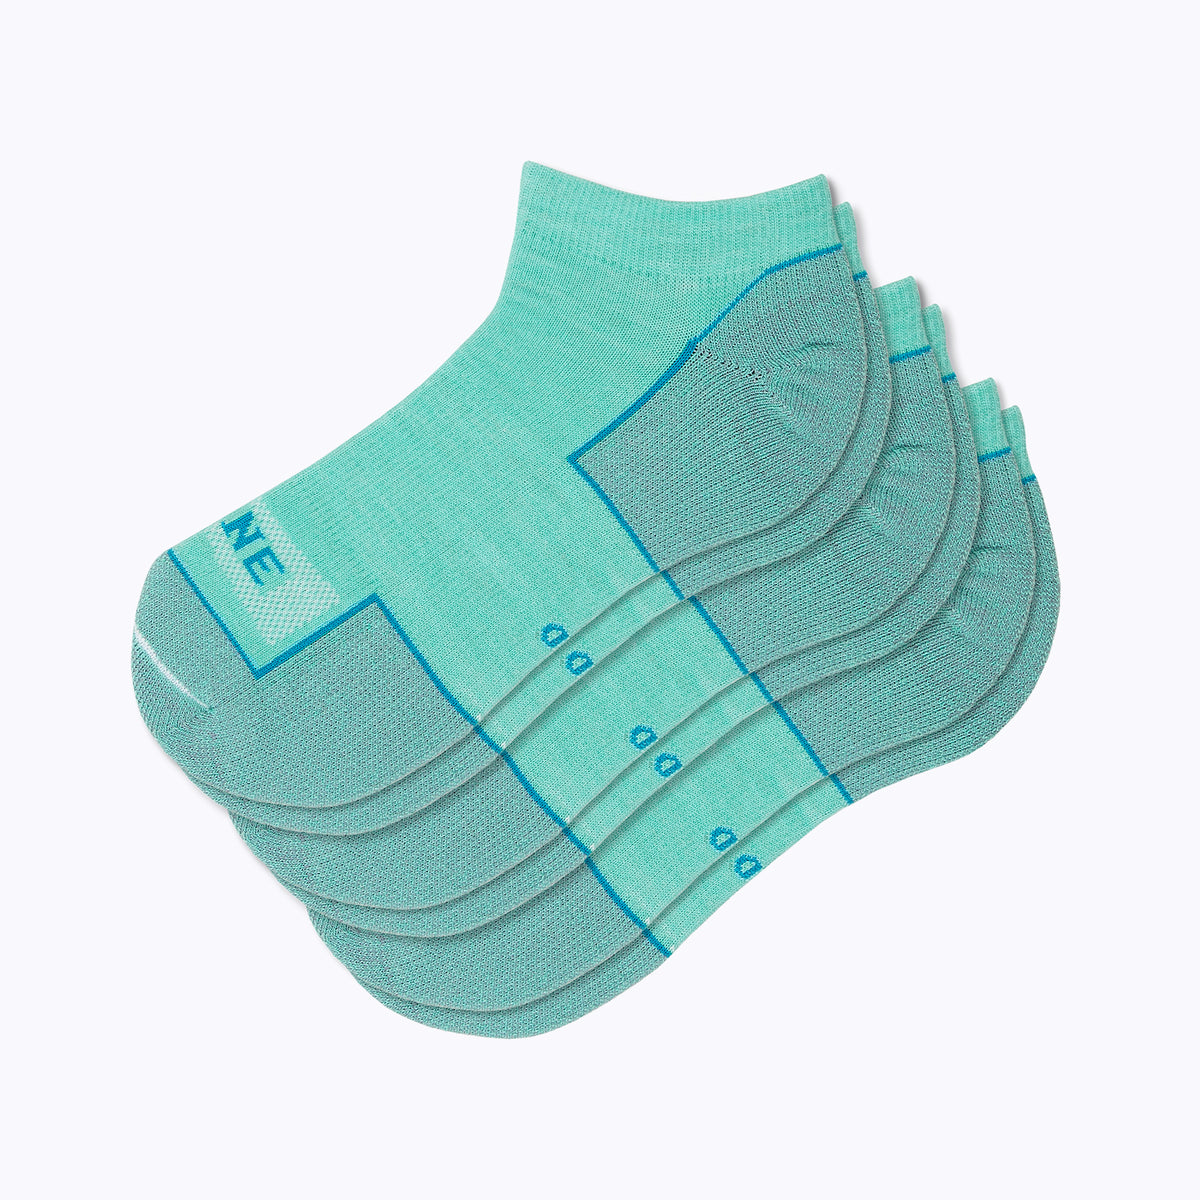 Everyday 3 Pack Women's Ankle Socks - Turq by Canyon x Lane Socks